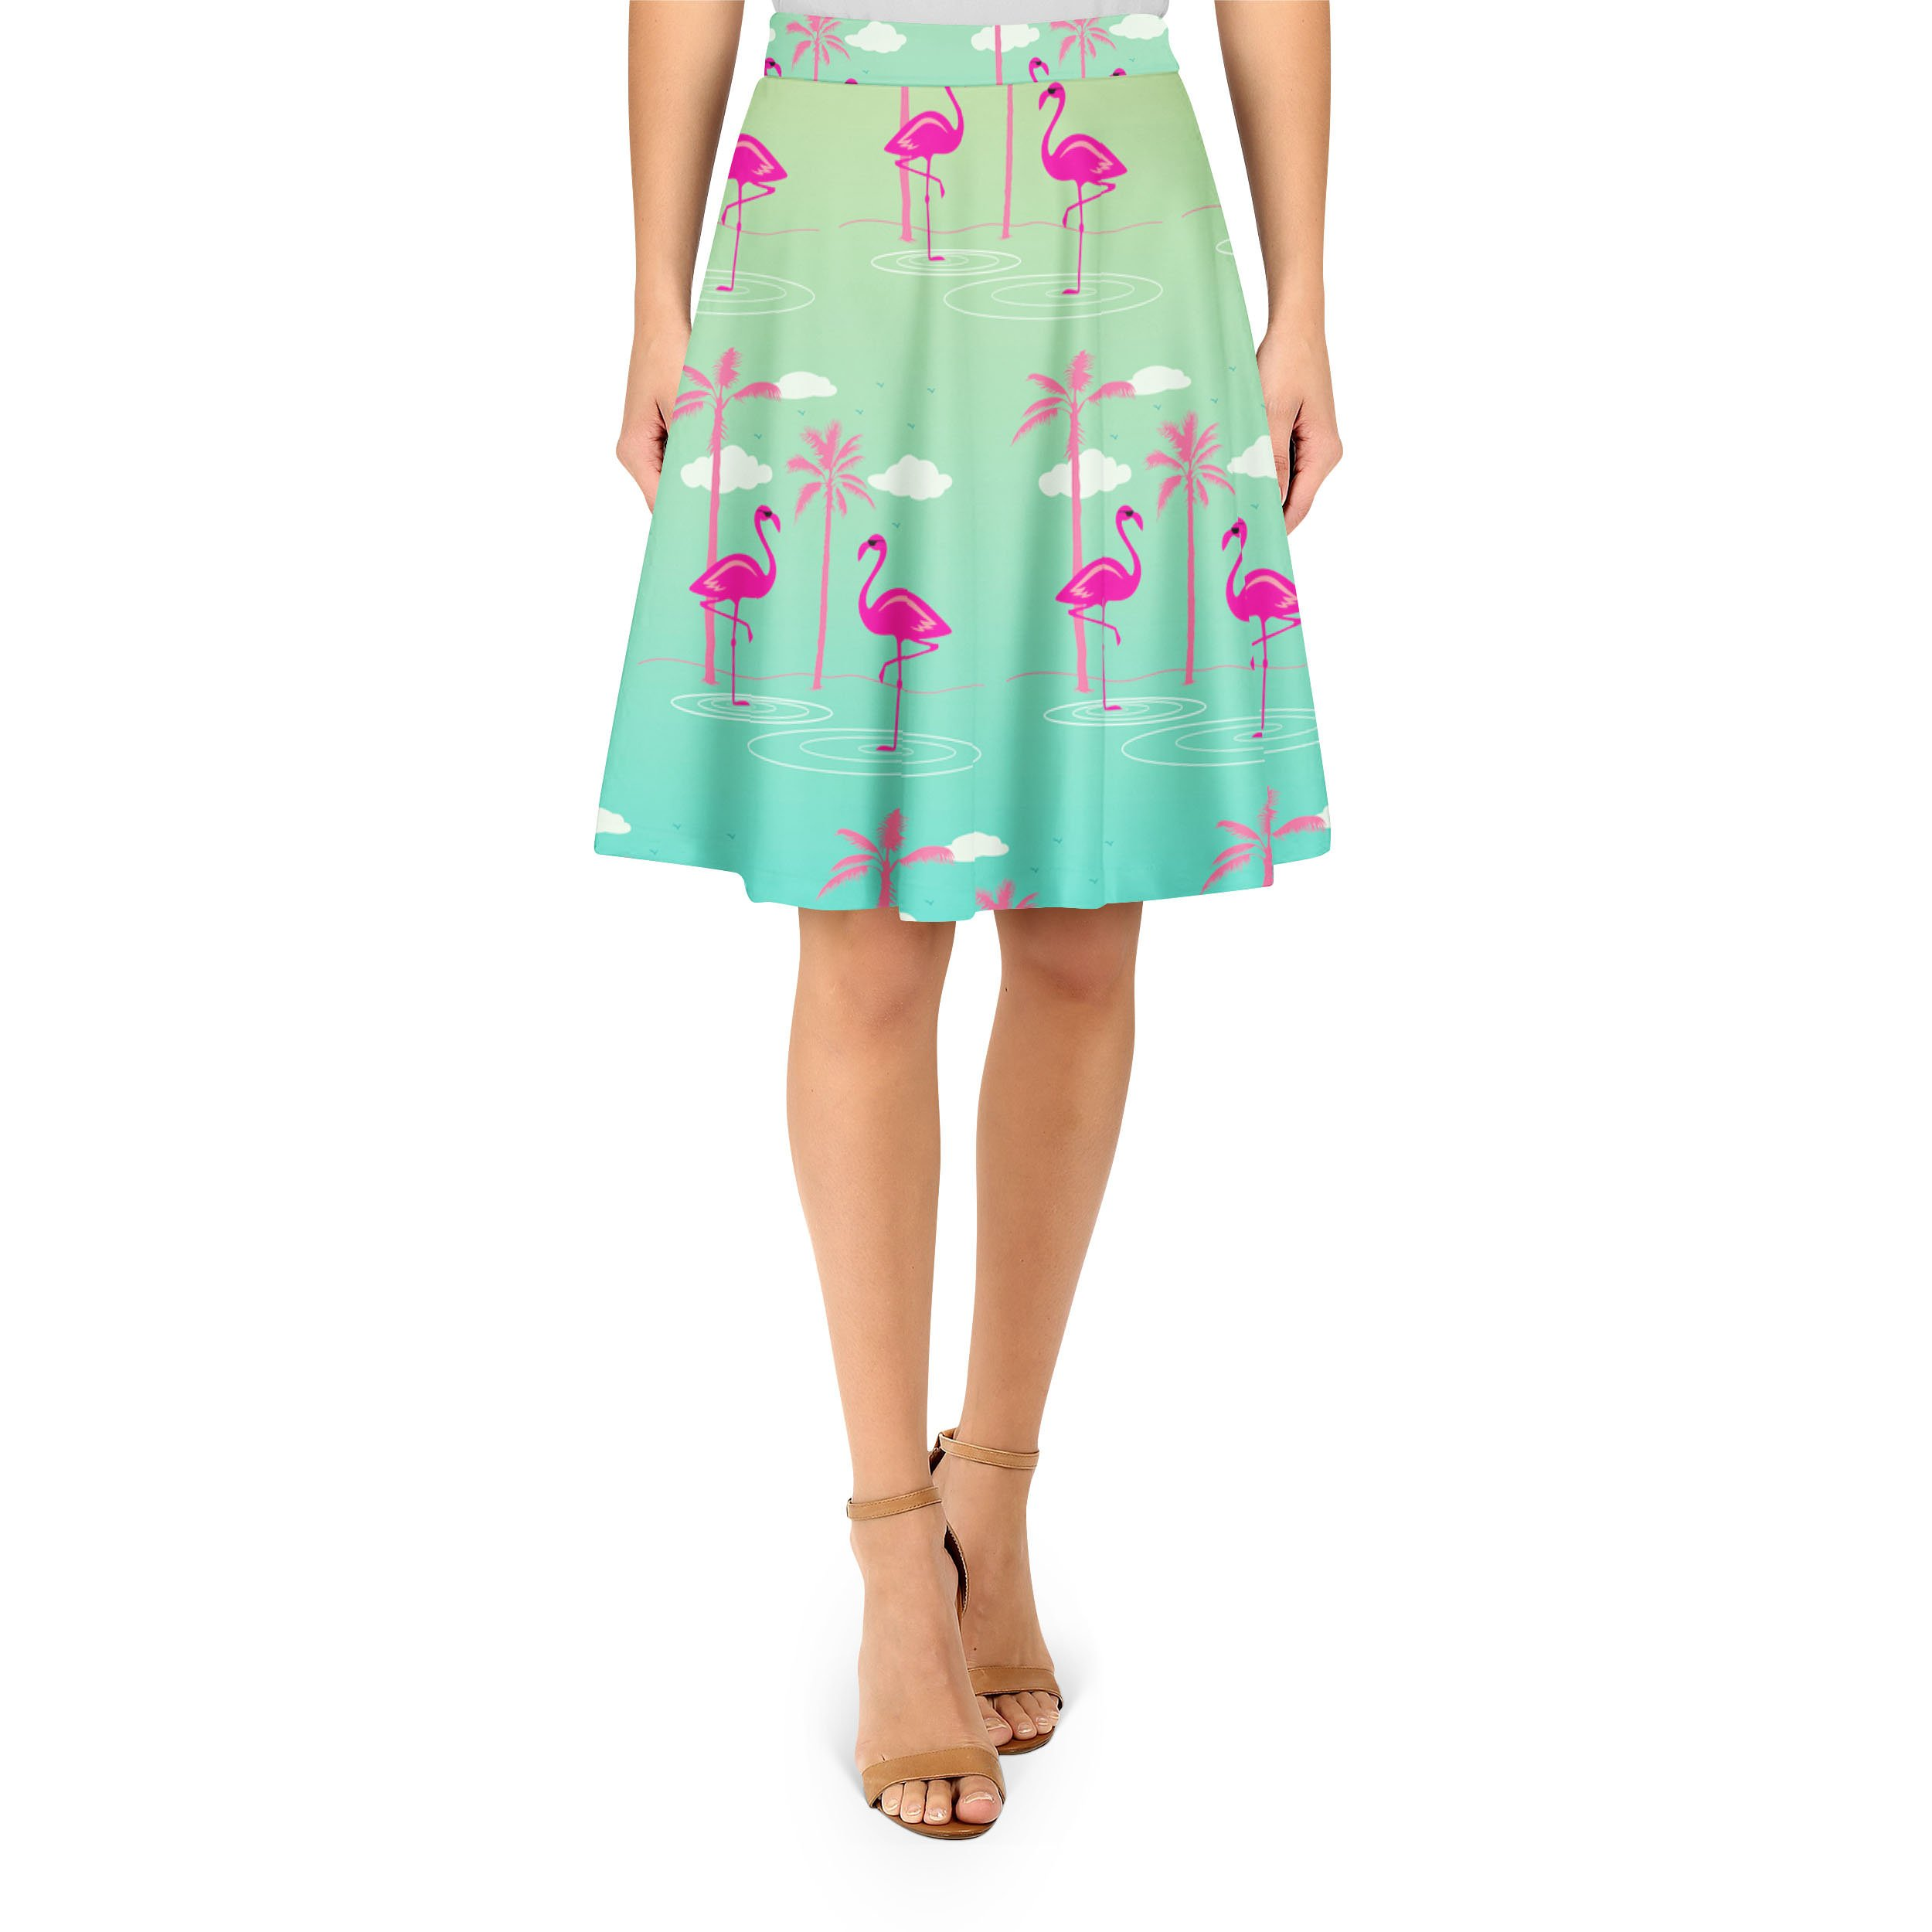 Flamingos in Sunglasses A-Line Skirt - XS